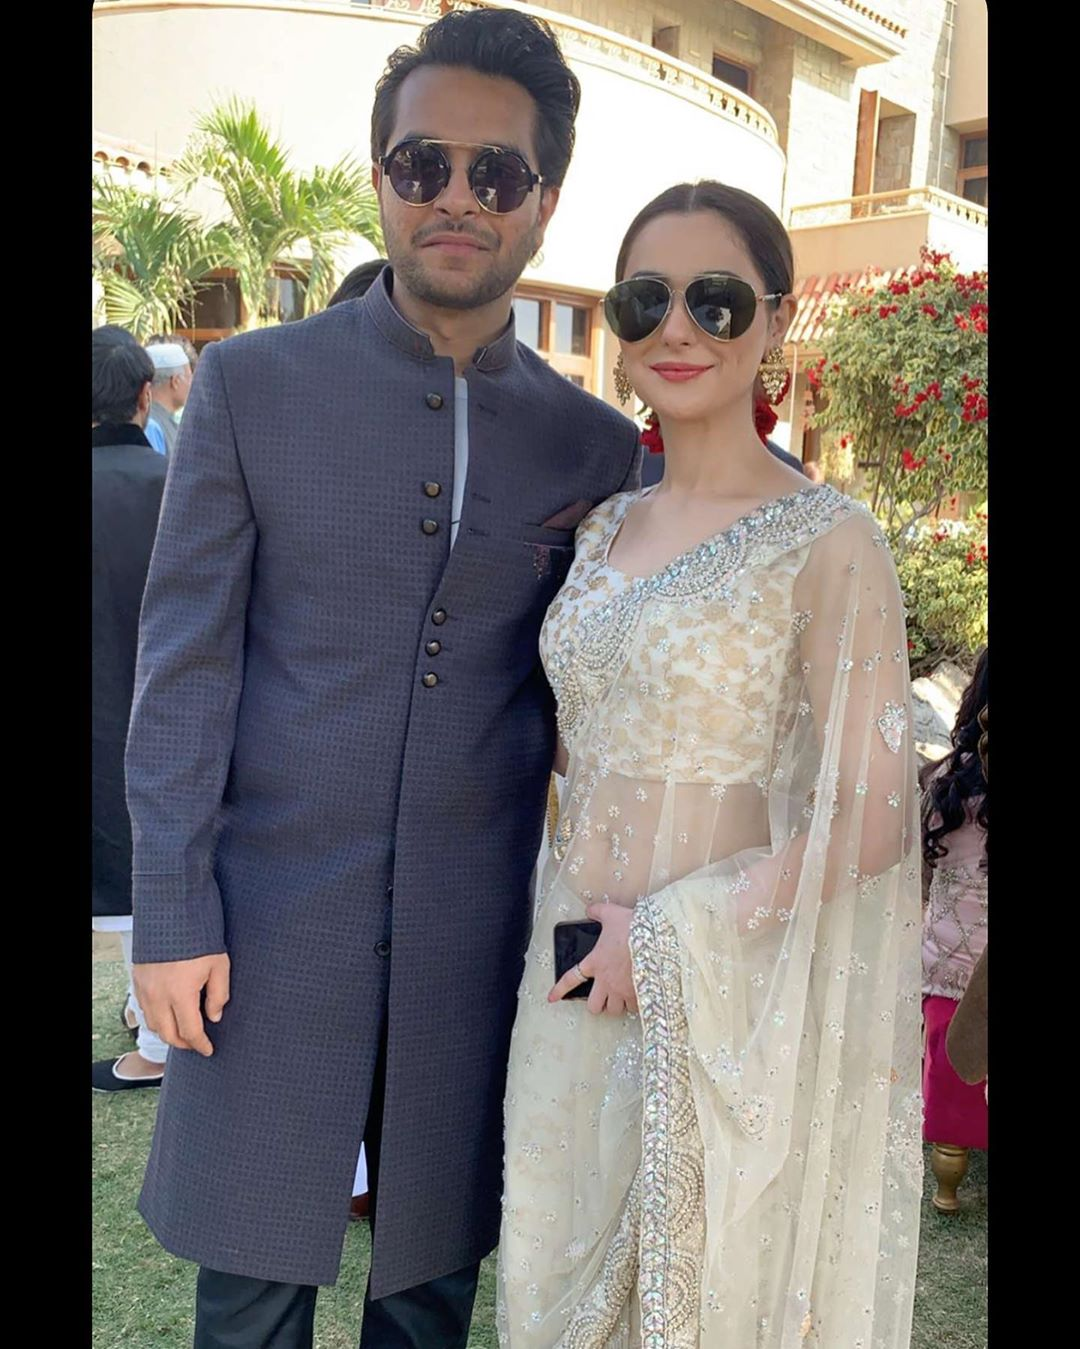 Iqra Aziz and Yasir Hussain Wedding Pictures and Videos